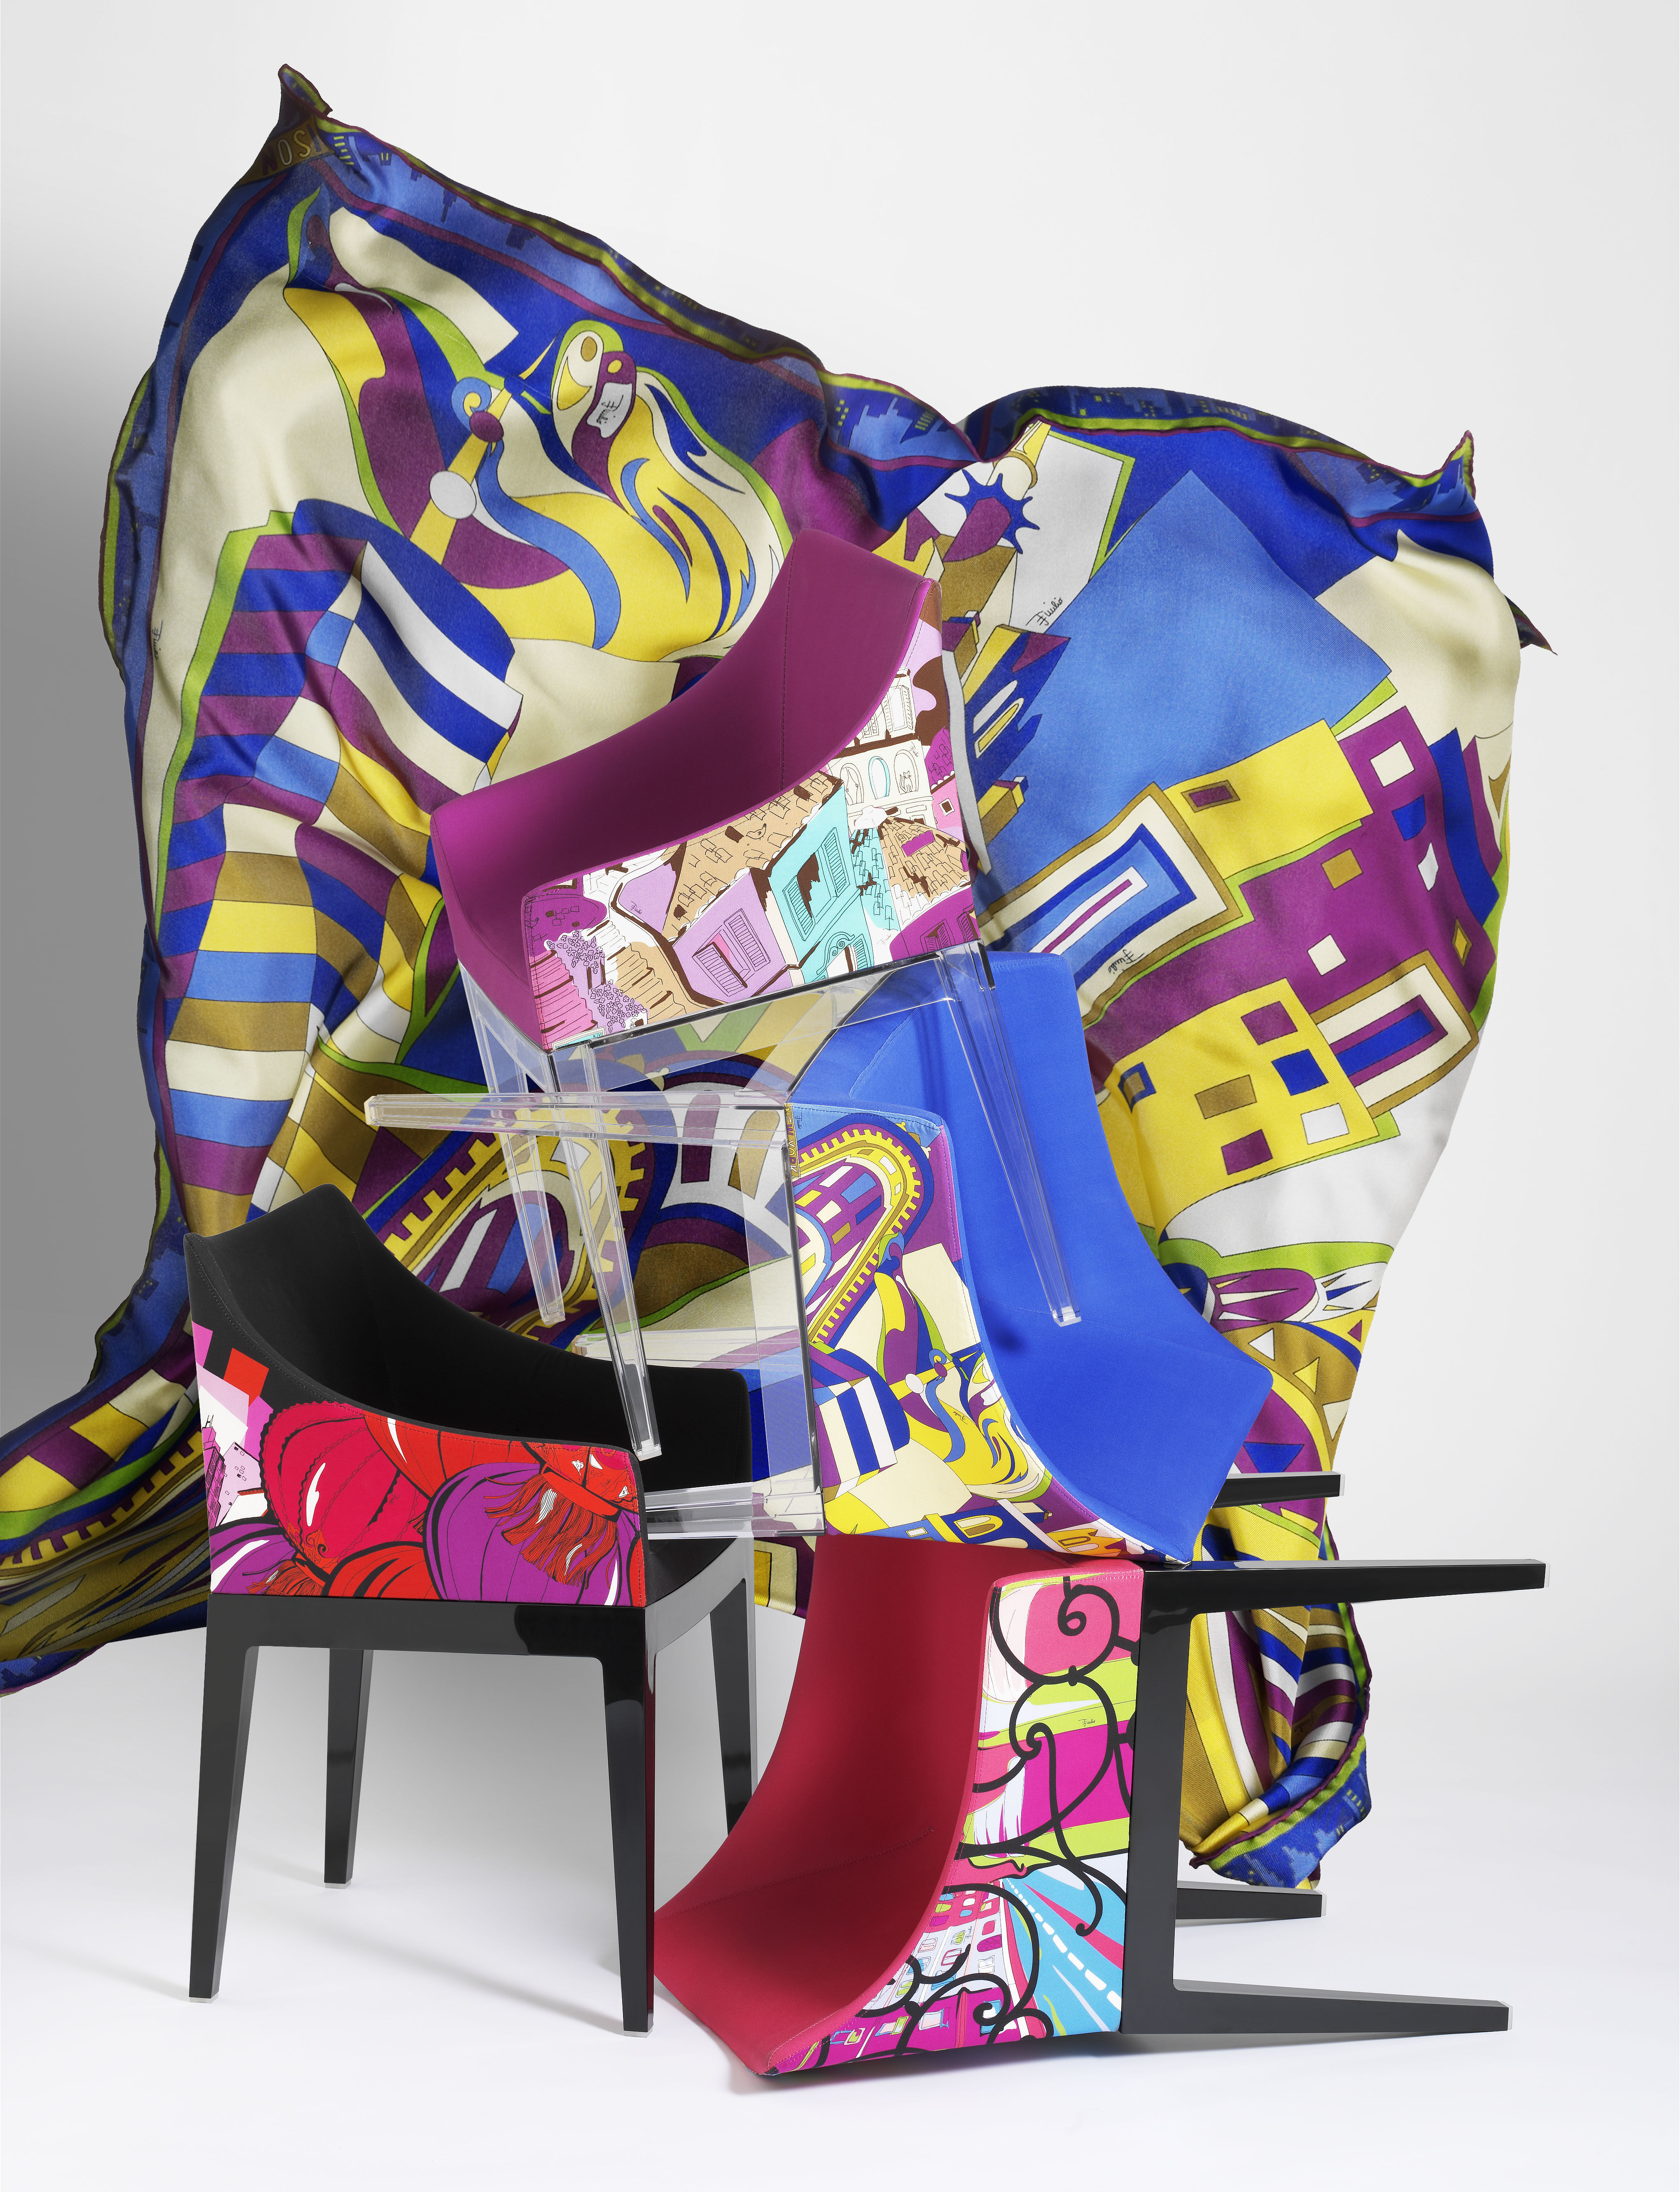 Madame padded armchair emilio pucci fabric shanghai for Miroir philippe starck